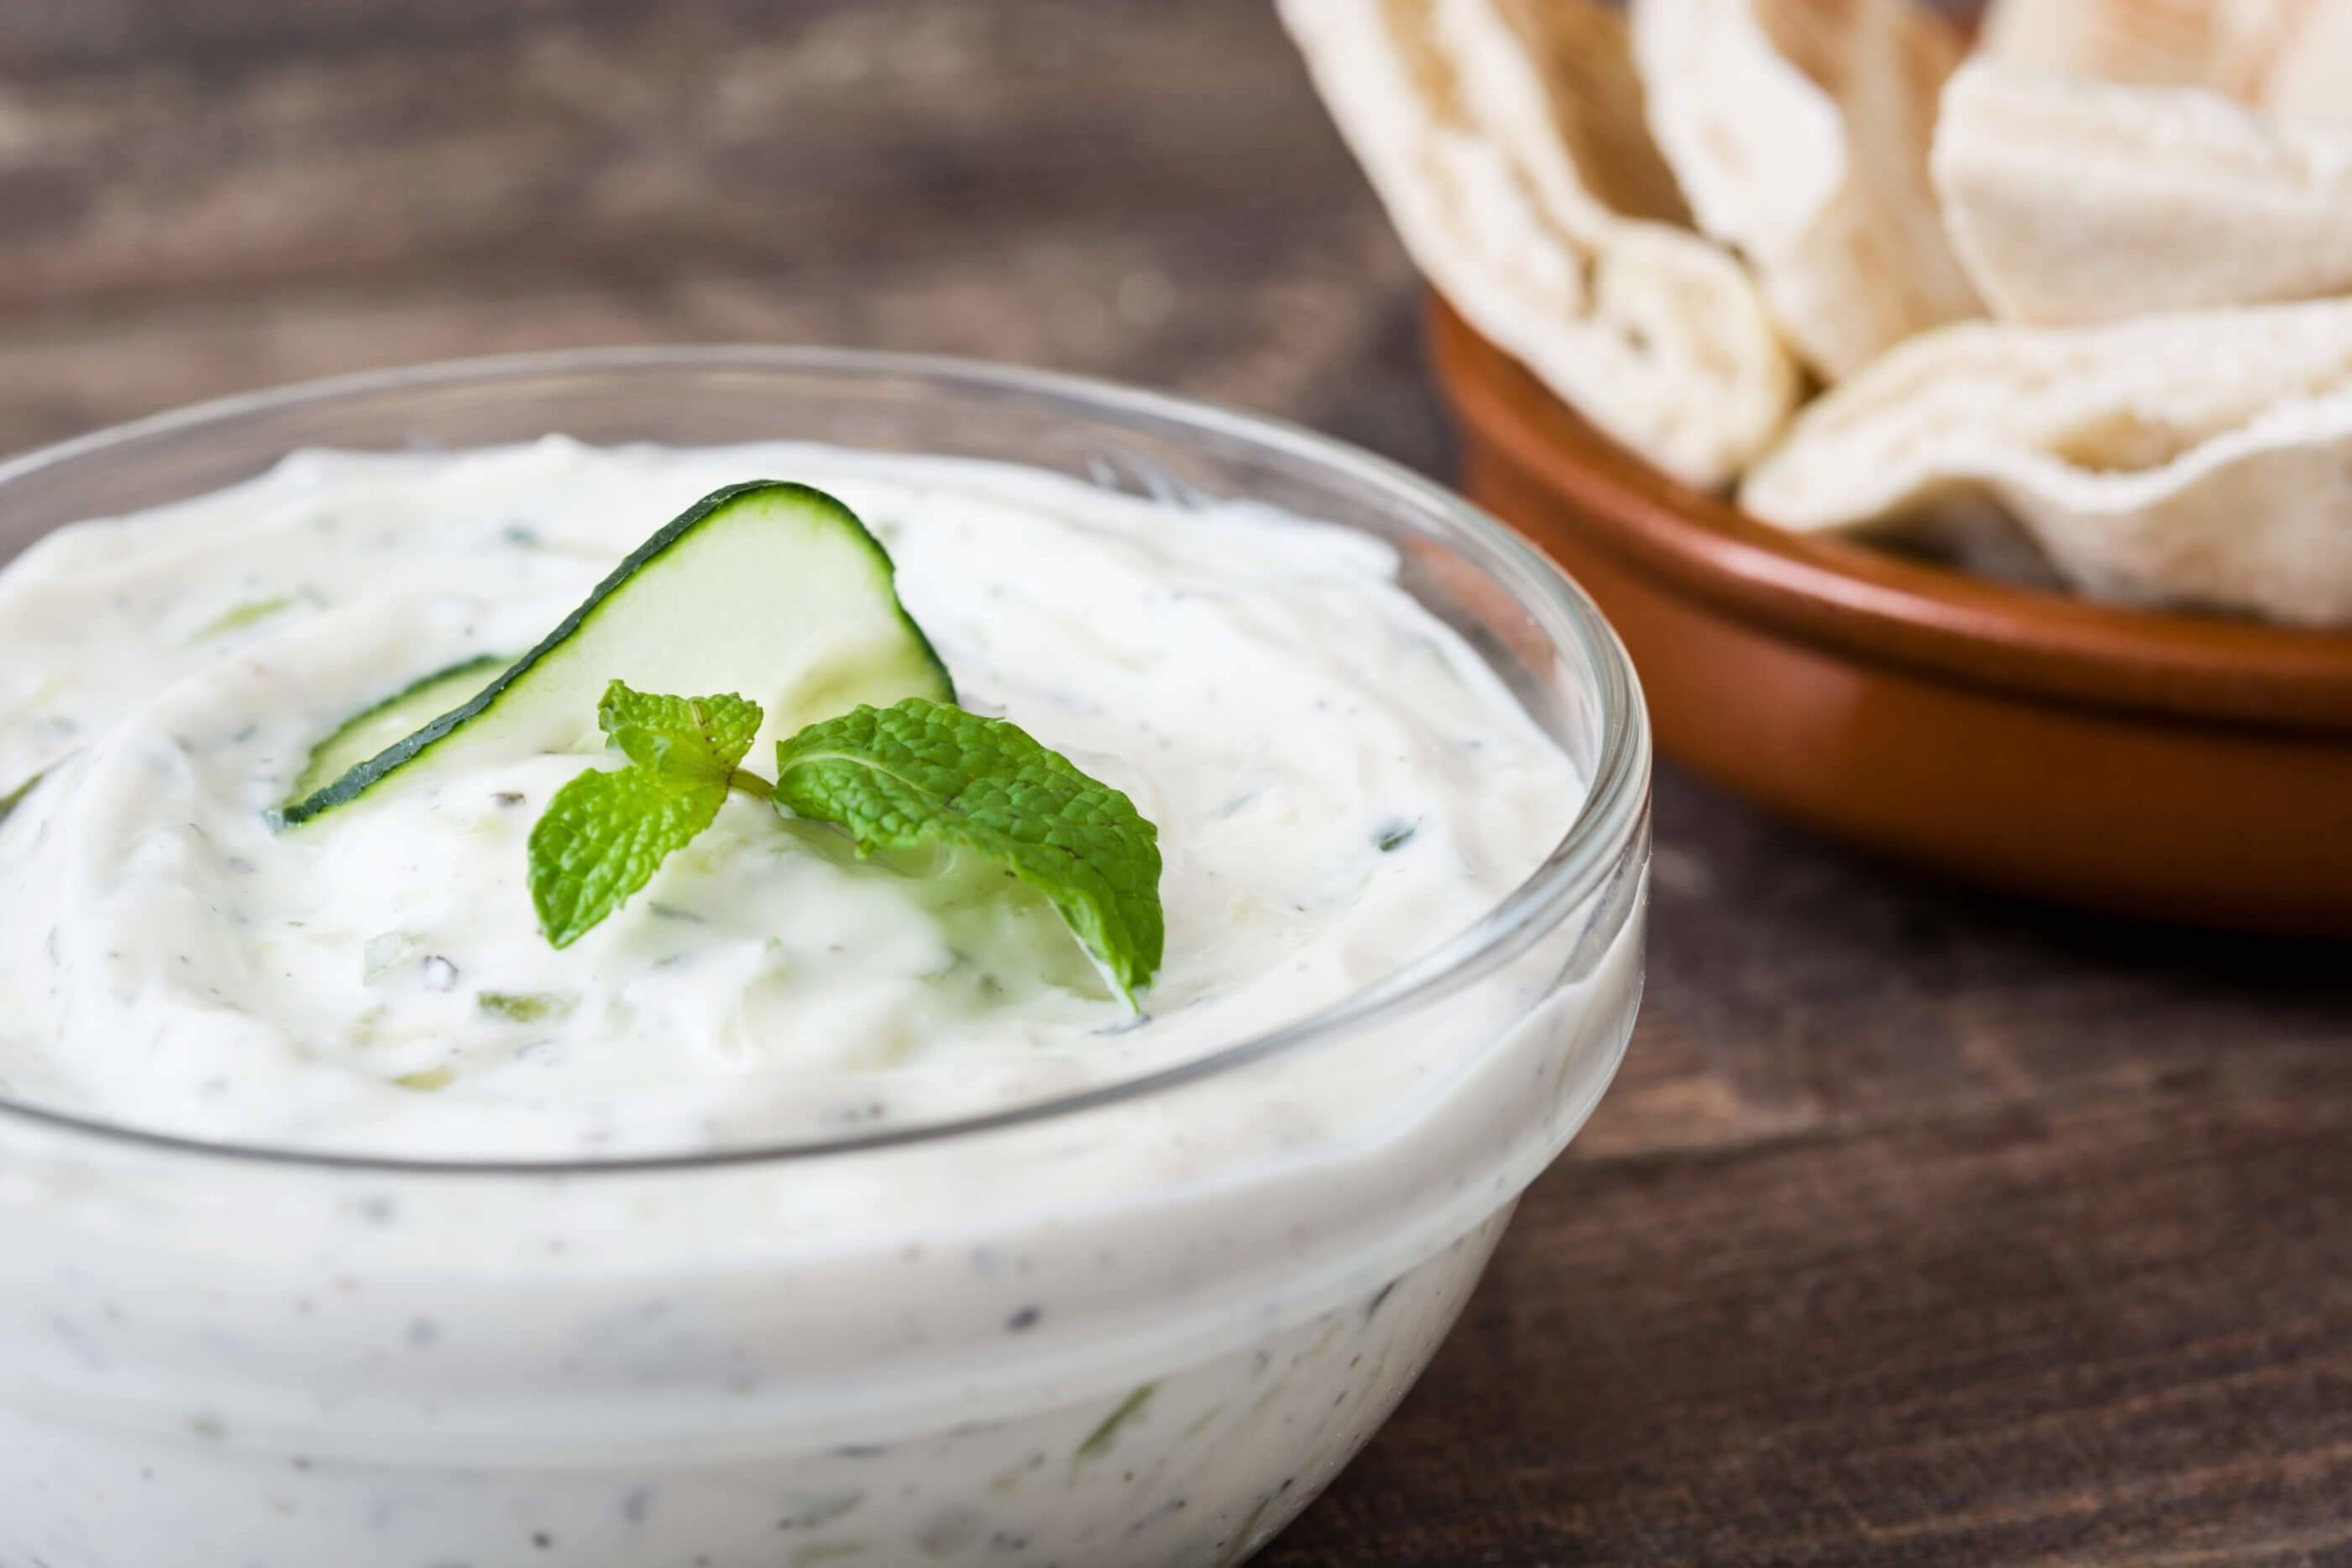 Kefir Savory Dips - Our savory dips are made out of milk kefir cheese and fresh ingredients. It is very creamy and rich, but still low in fat, packed with probiotics, protein, vitamins and minerals.